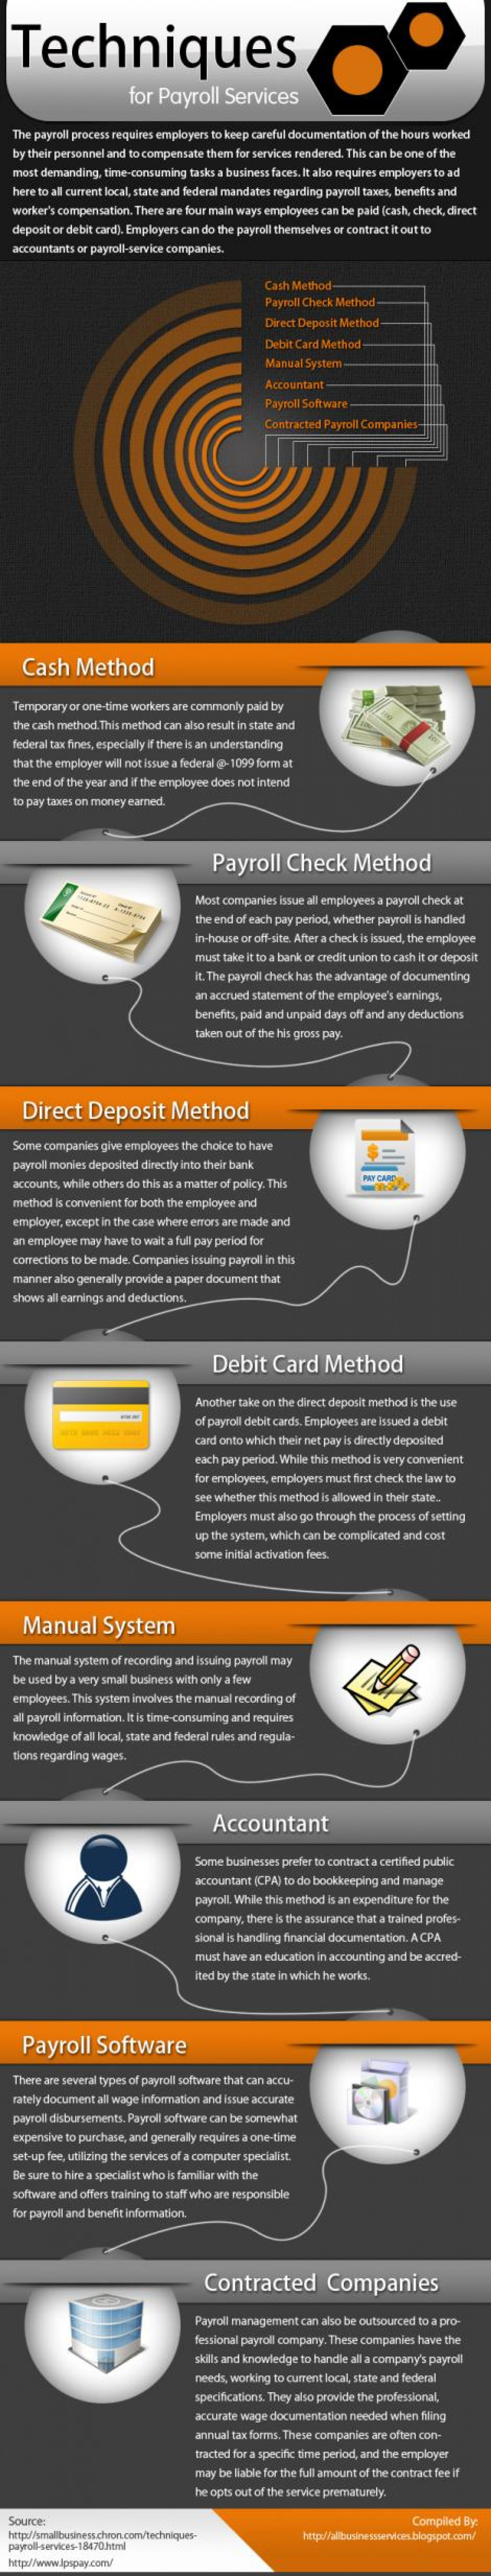 Techniques for Payroll Services Infographic